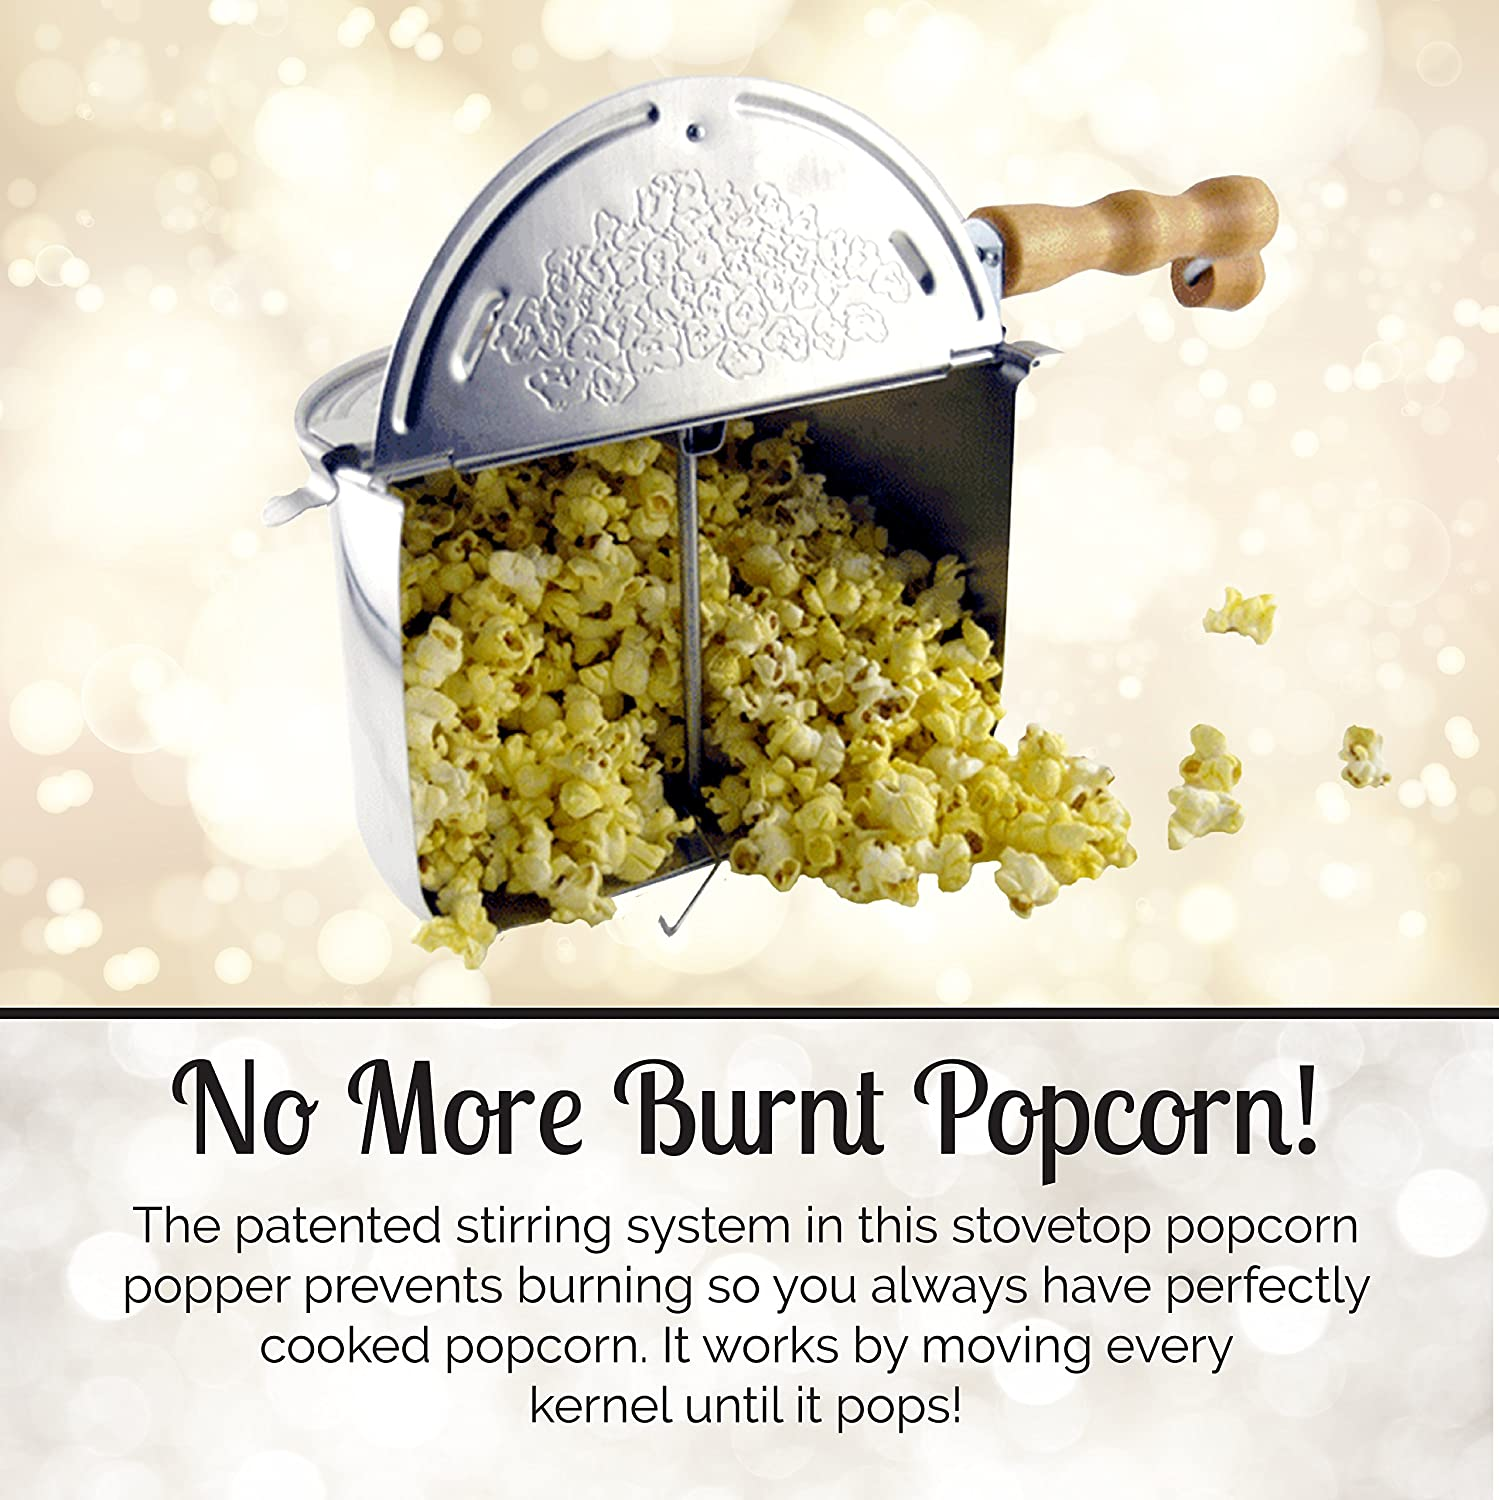 Original Wabash Valley Farms Whirley Pop Silver Stovetop Popcorn Popper - Perfect Popcorn in 3 Minutes, Makes a Great Gift COMINHKPR94568